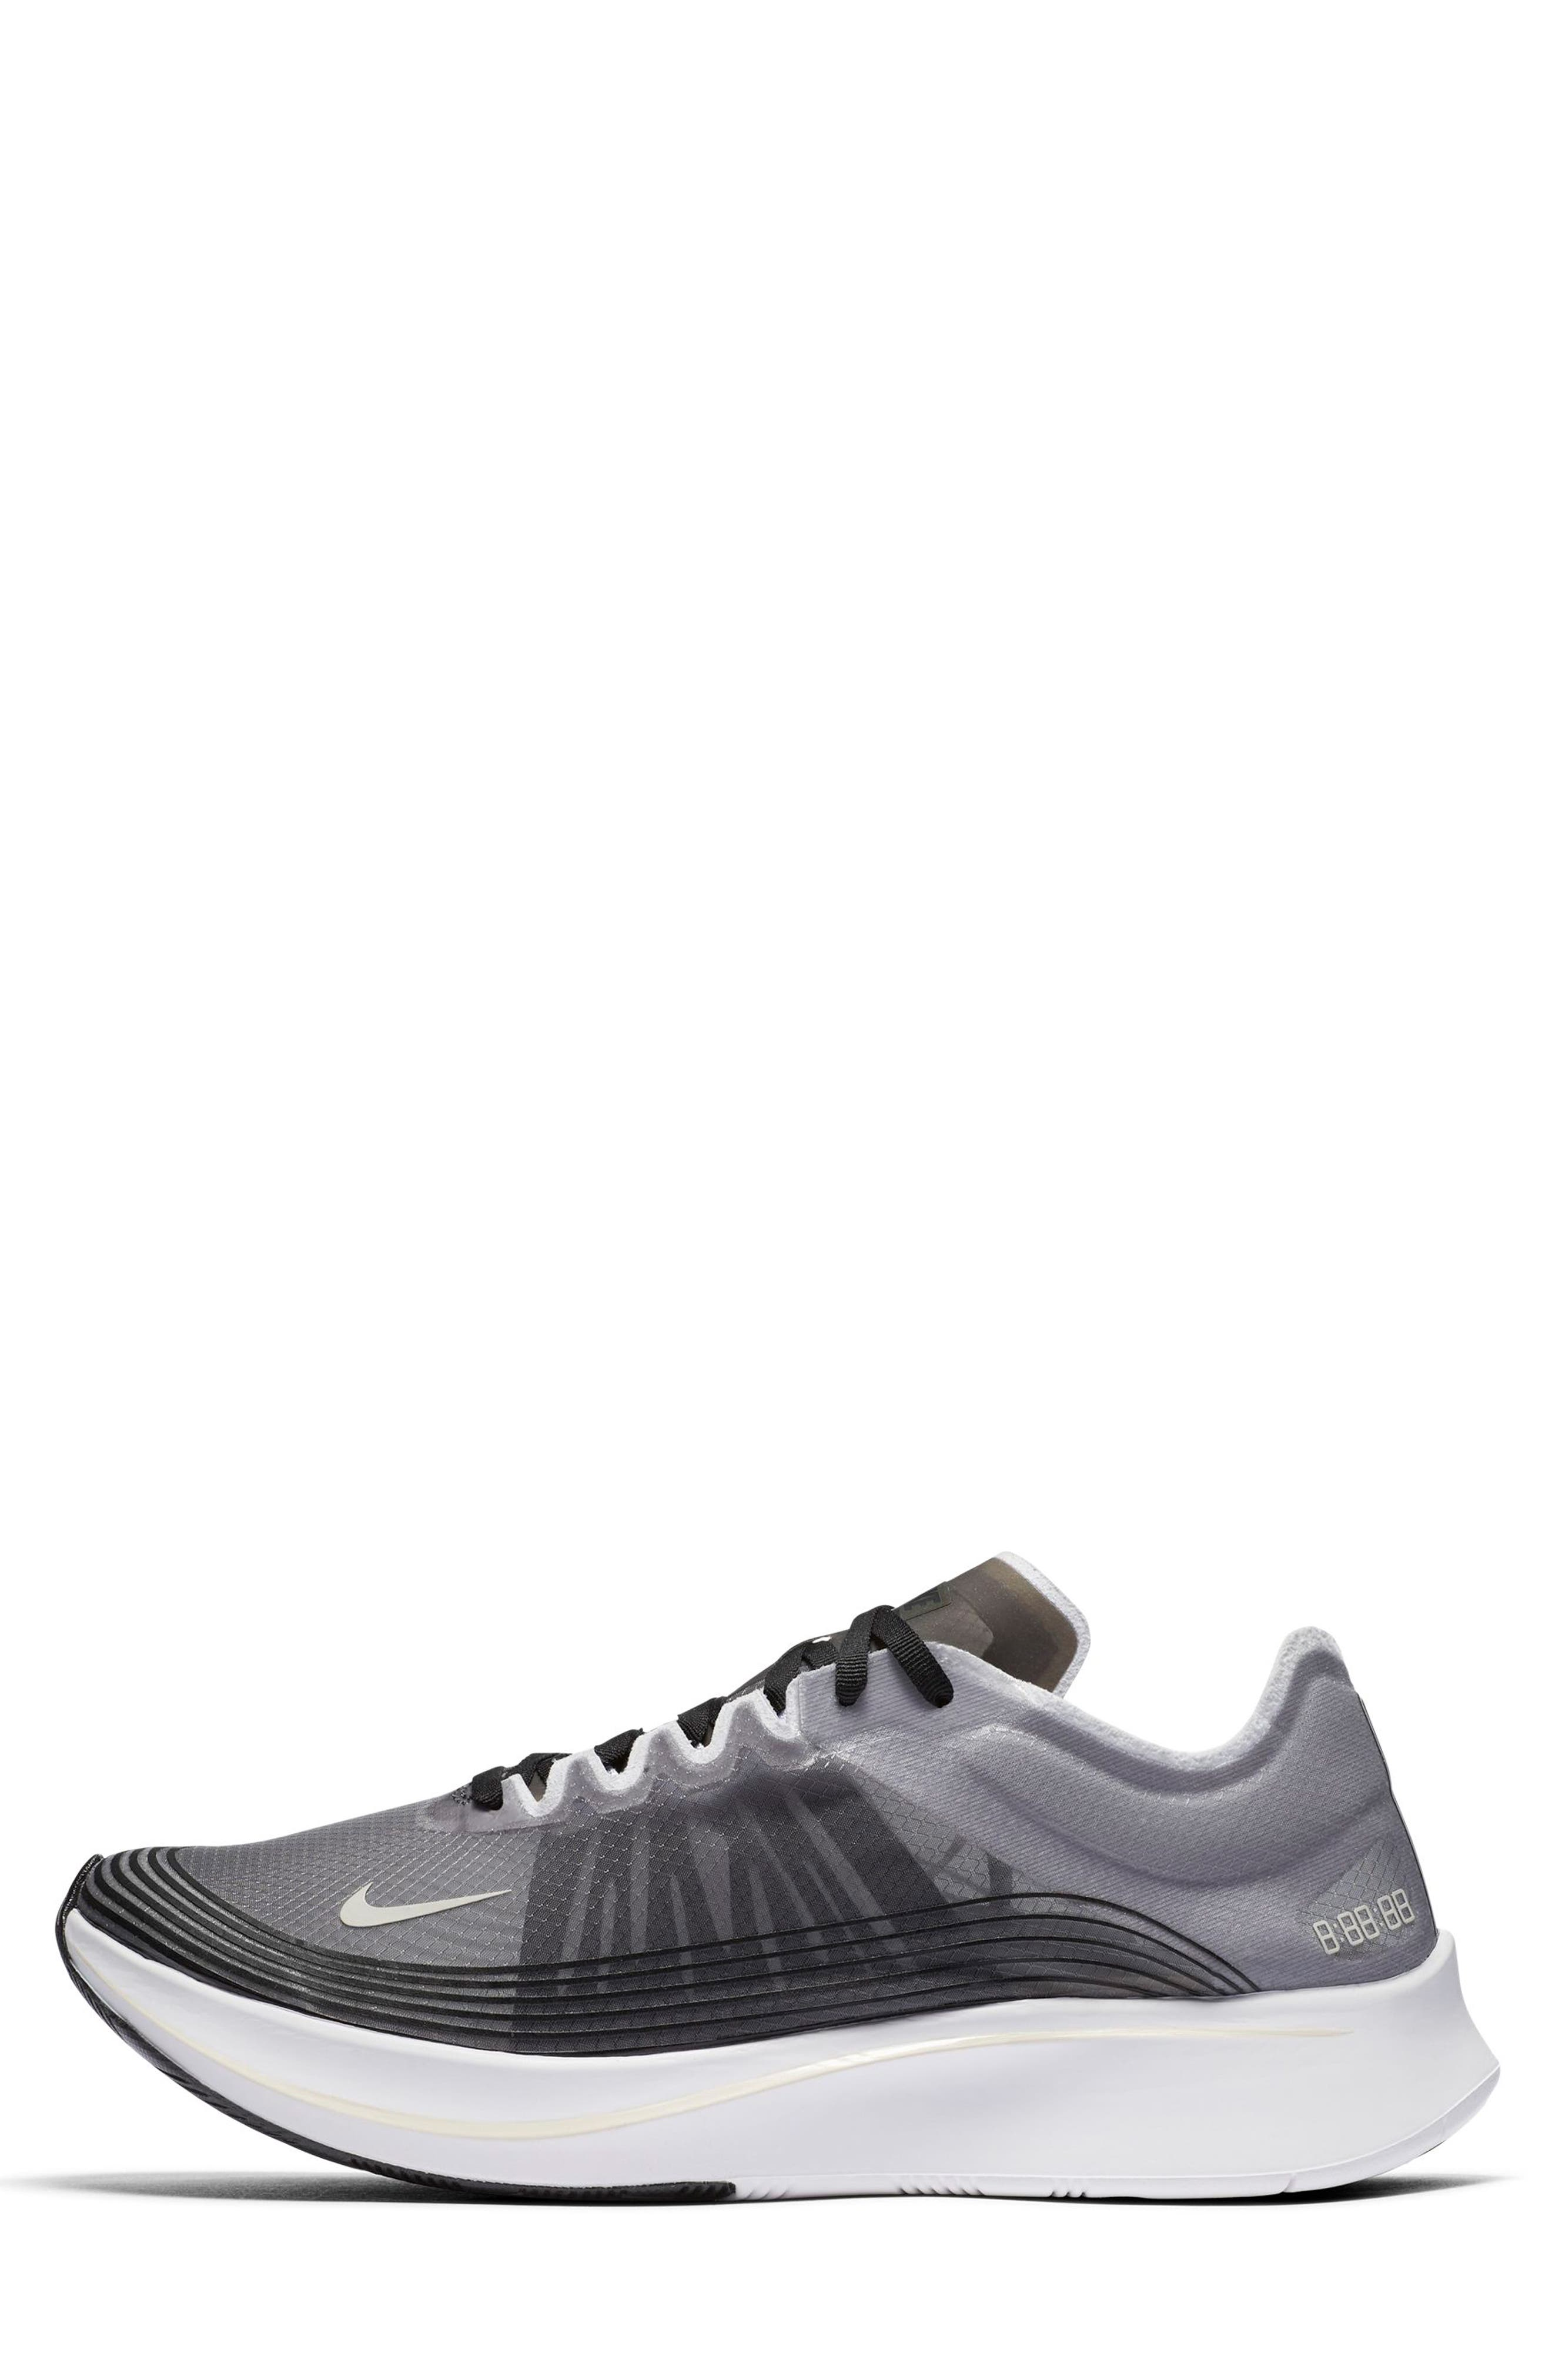 Zoom Fly SP Running Shoe,                             Alternate thumbnail 7, color,                             001